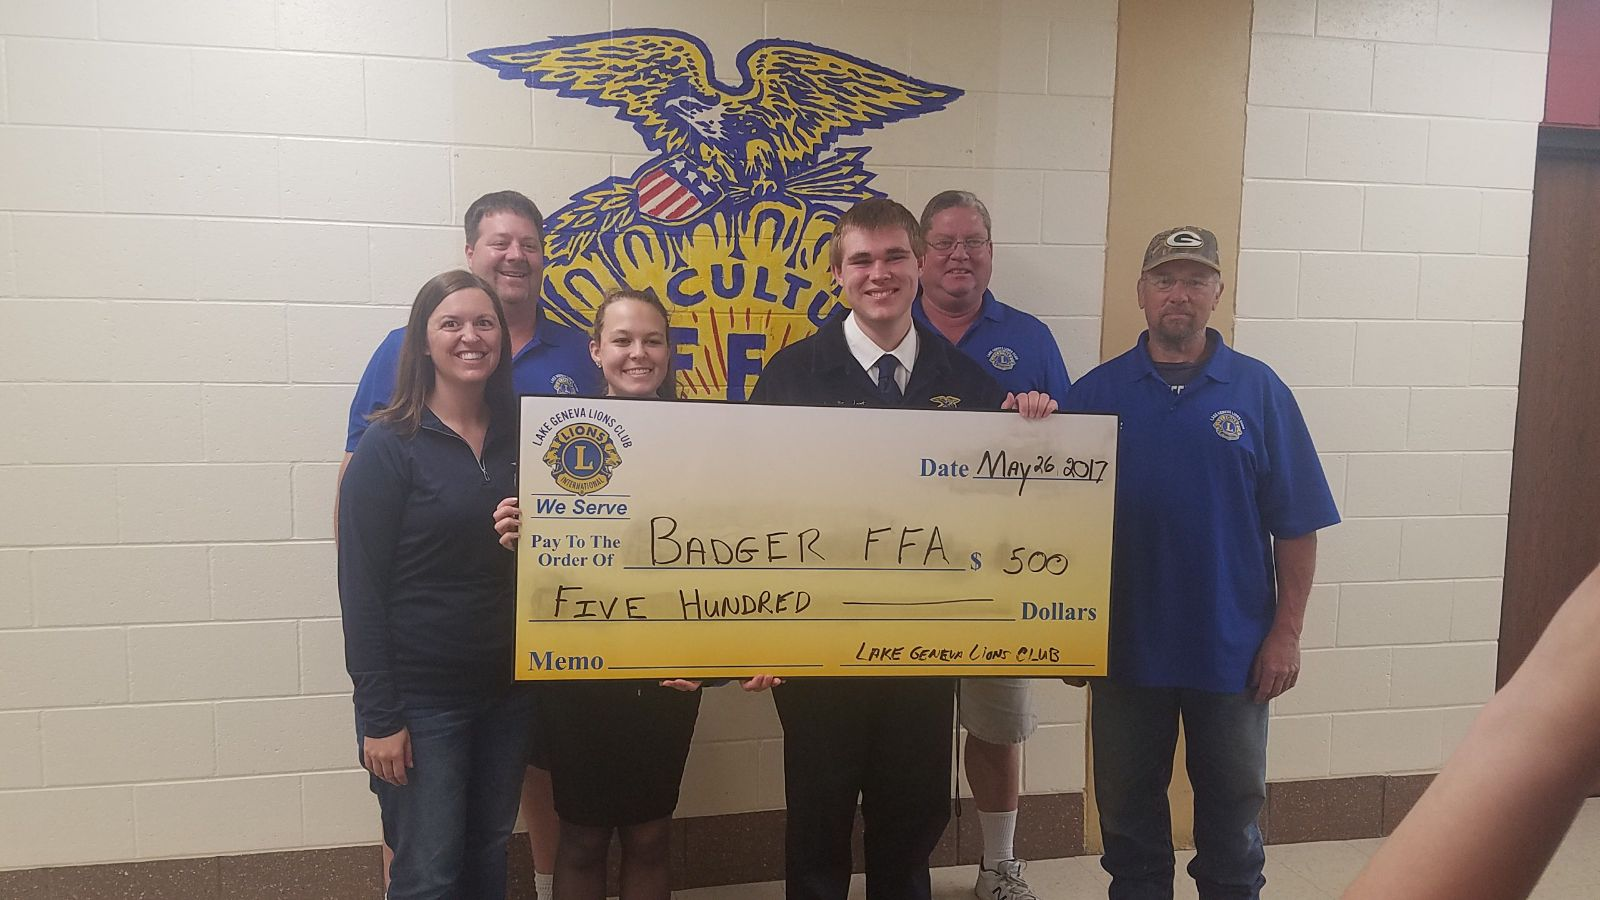 Badger FFA Donation